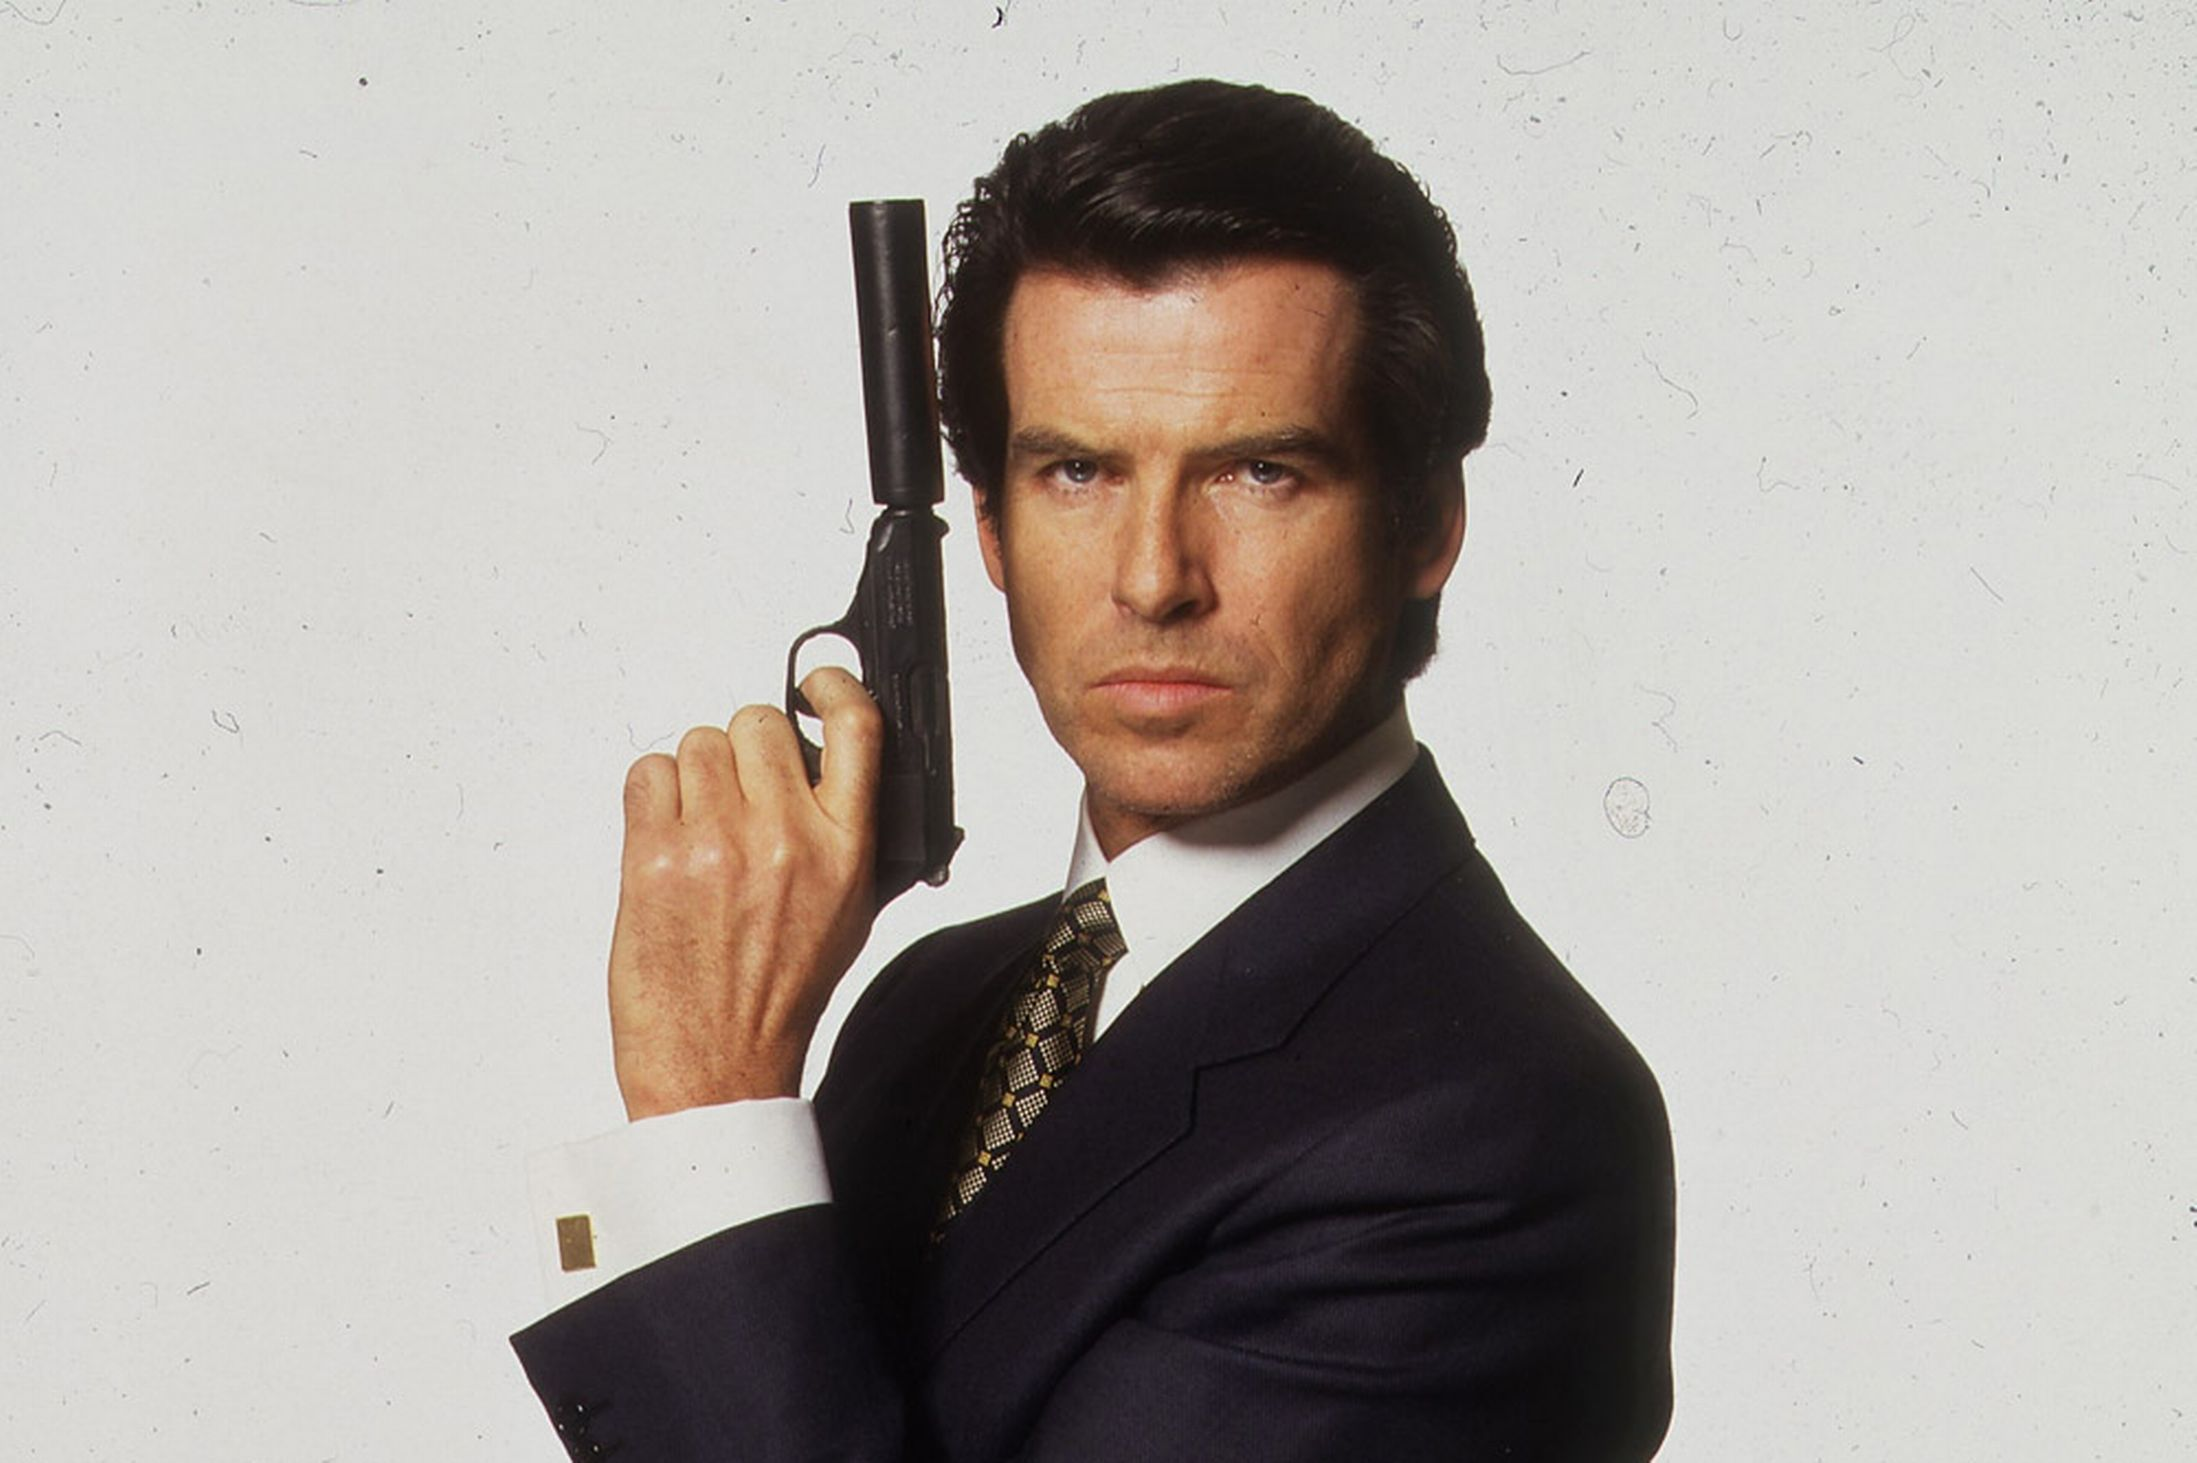 Pierce-Brosnan bond